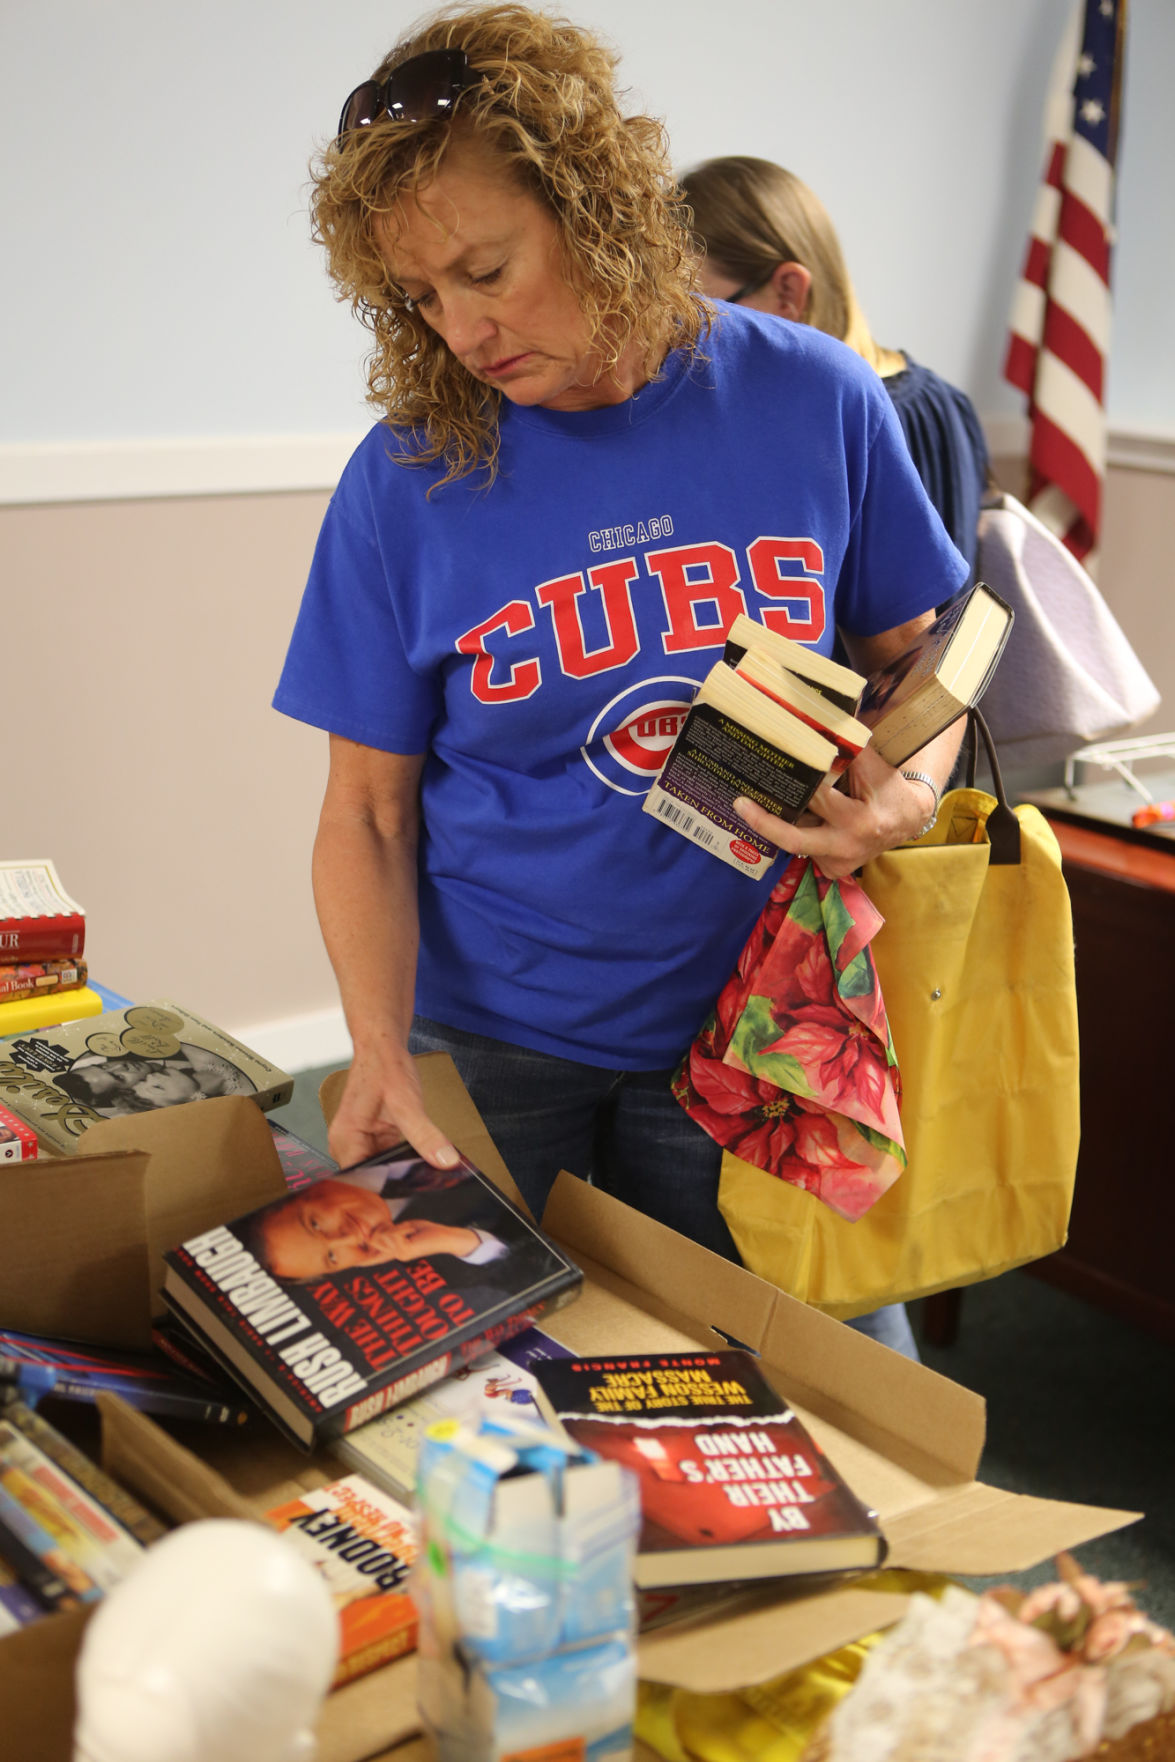 Shoppers bag bargains at Lowell garage sale | Lake County News ... on auction time, party time, technology time, garage sales in my area, art time, trivia time, cleaning time, cooking time, giveaway time, garage sales registration form, sports time, friends time, birthday time, business time, movies time, car wash time, games time, dance time, garage wall lights,